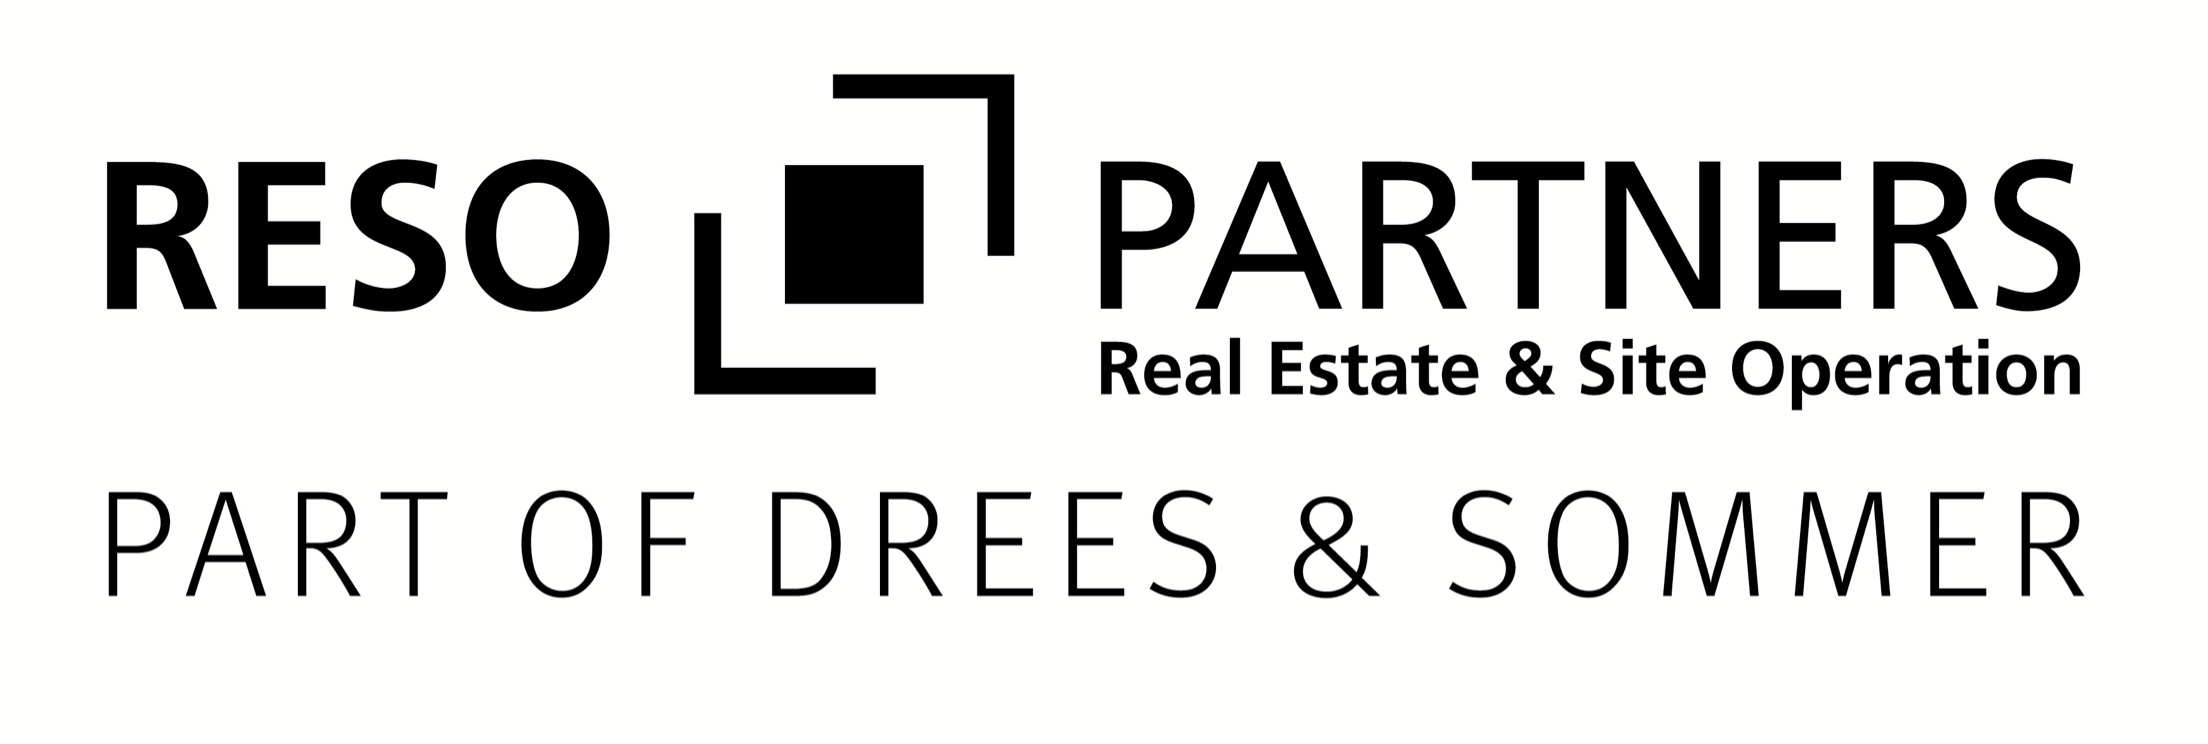 Drees & Sommer Schweiz acquiert Reso Partners SA